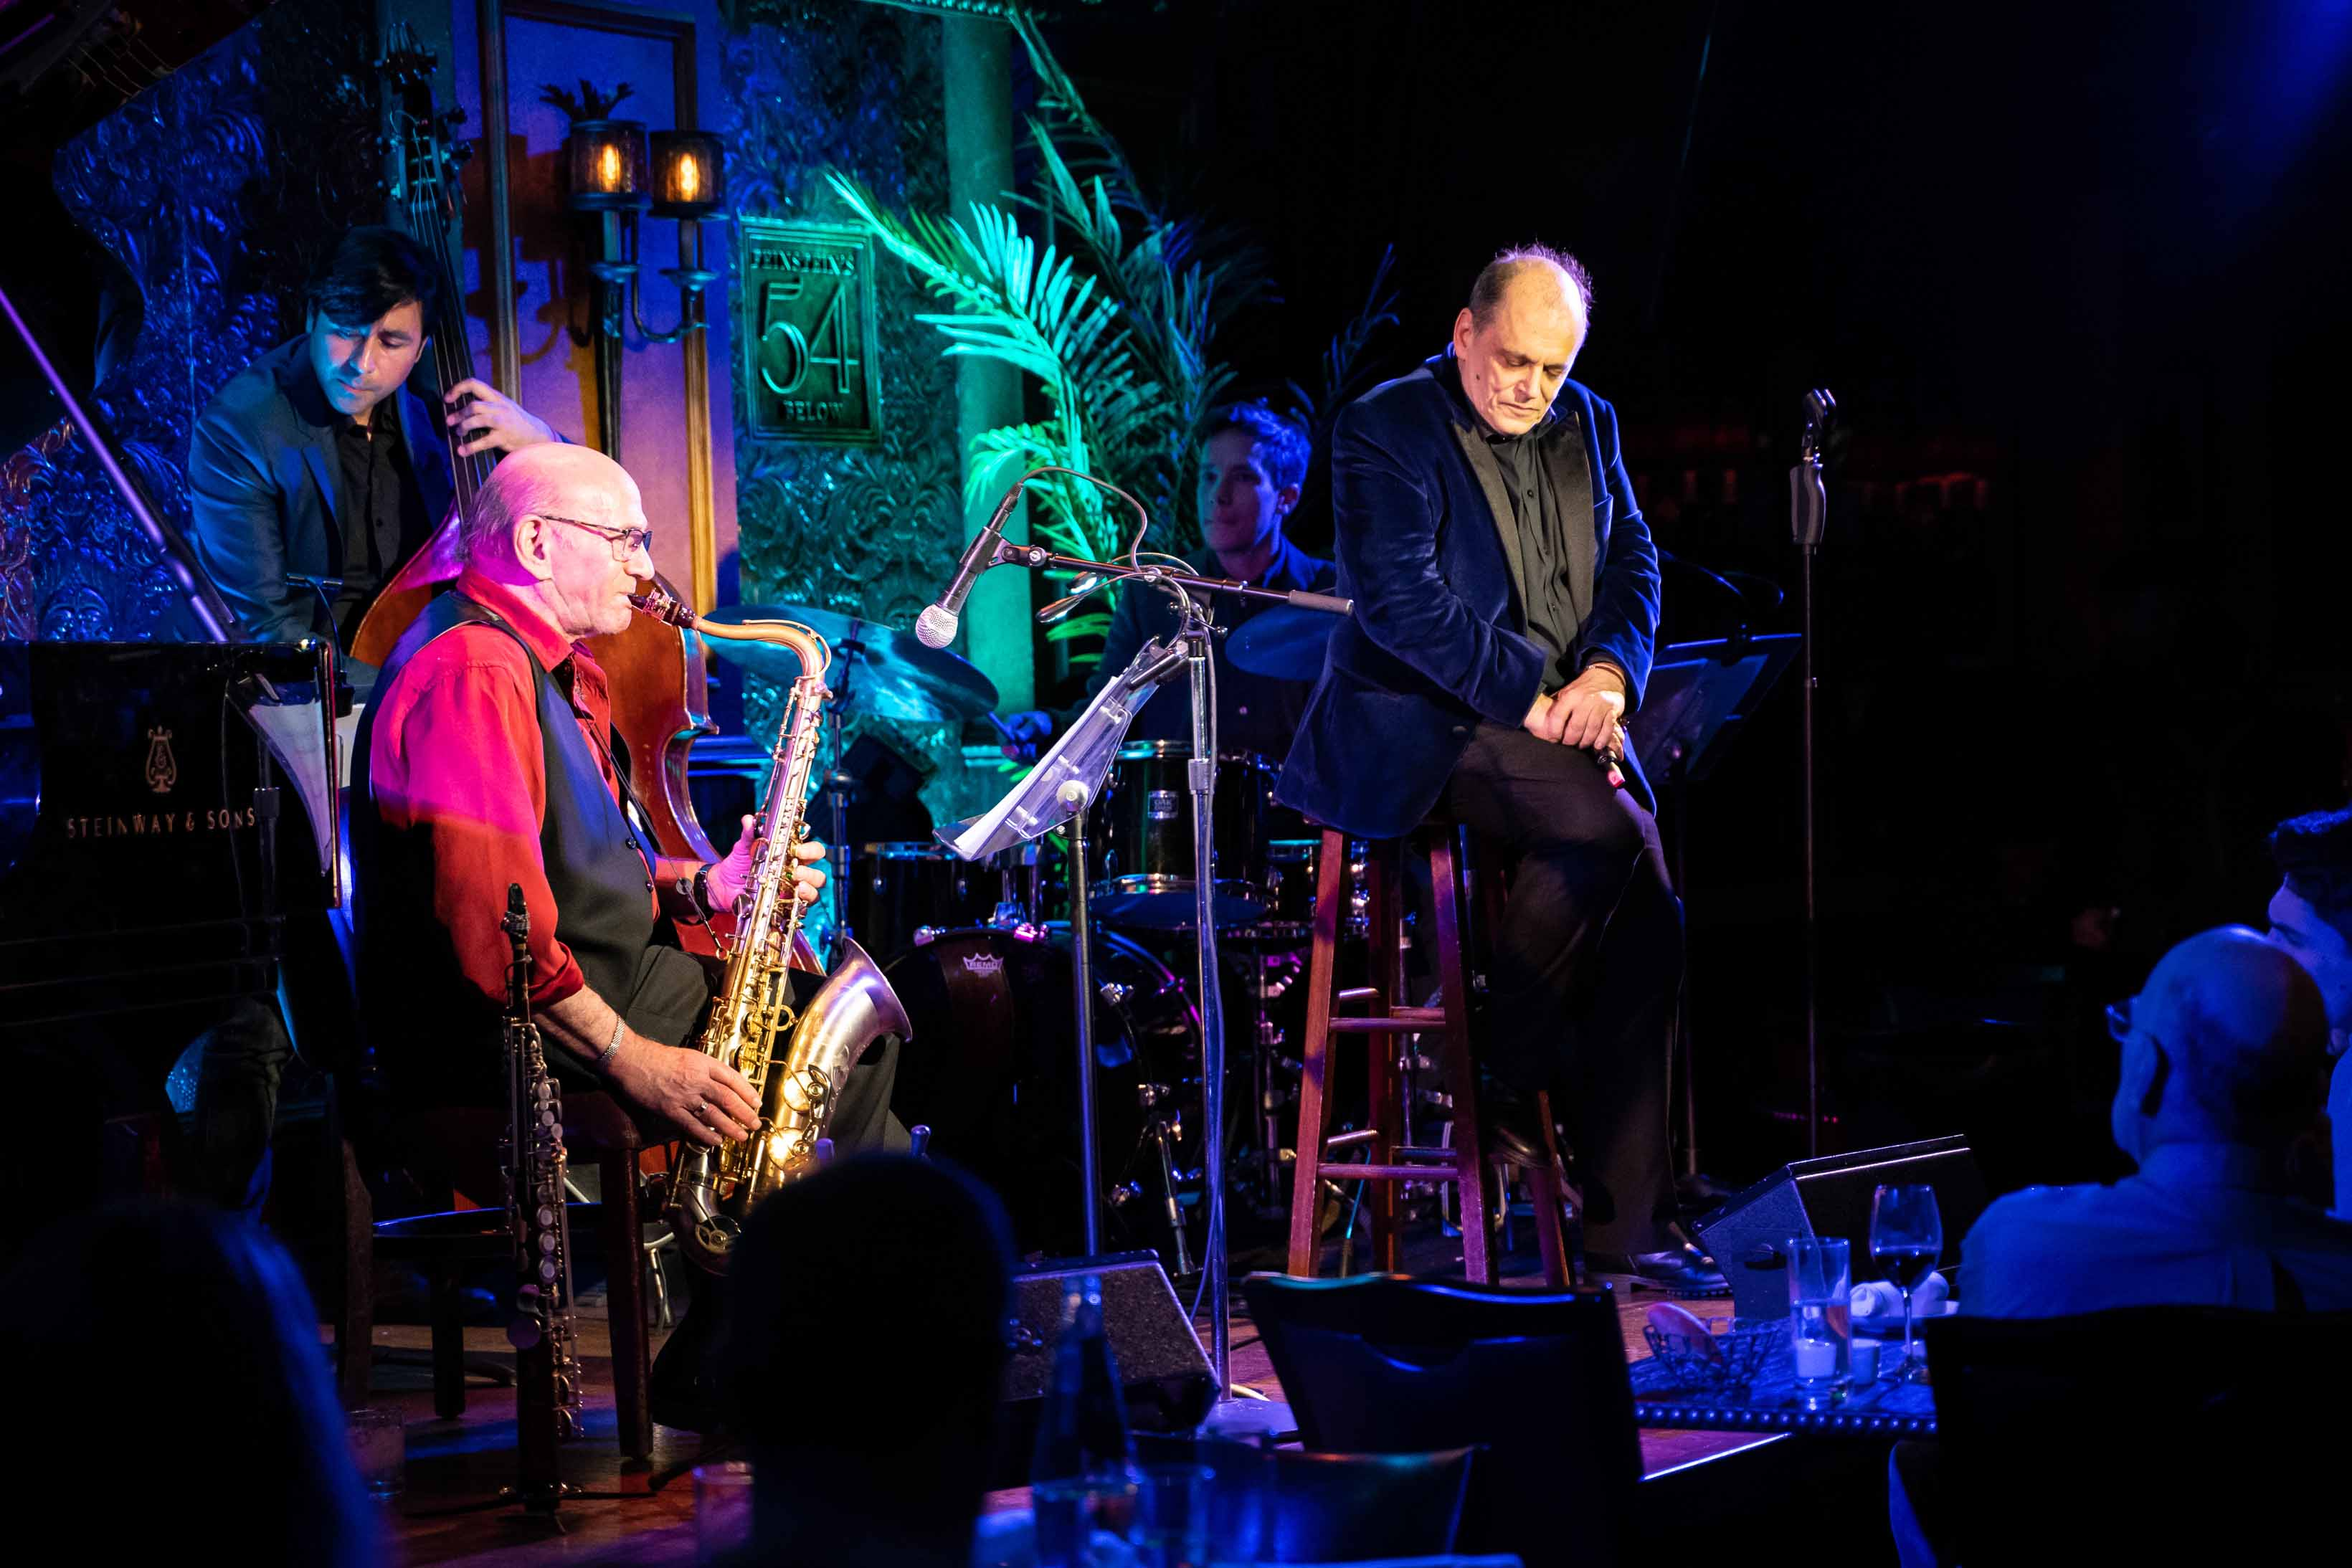 EVENT ANNOUNCEMENT: John Minnock and Dave Liebman Return to 54 Below on September 20th